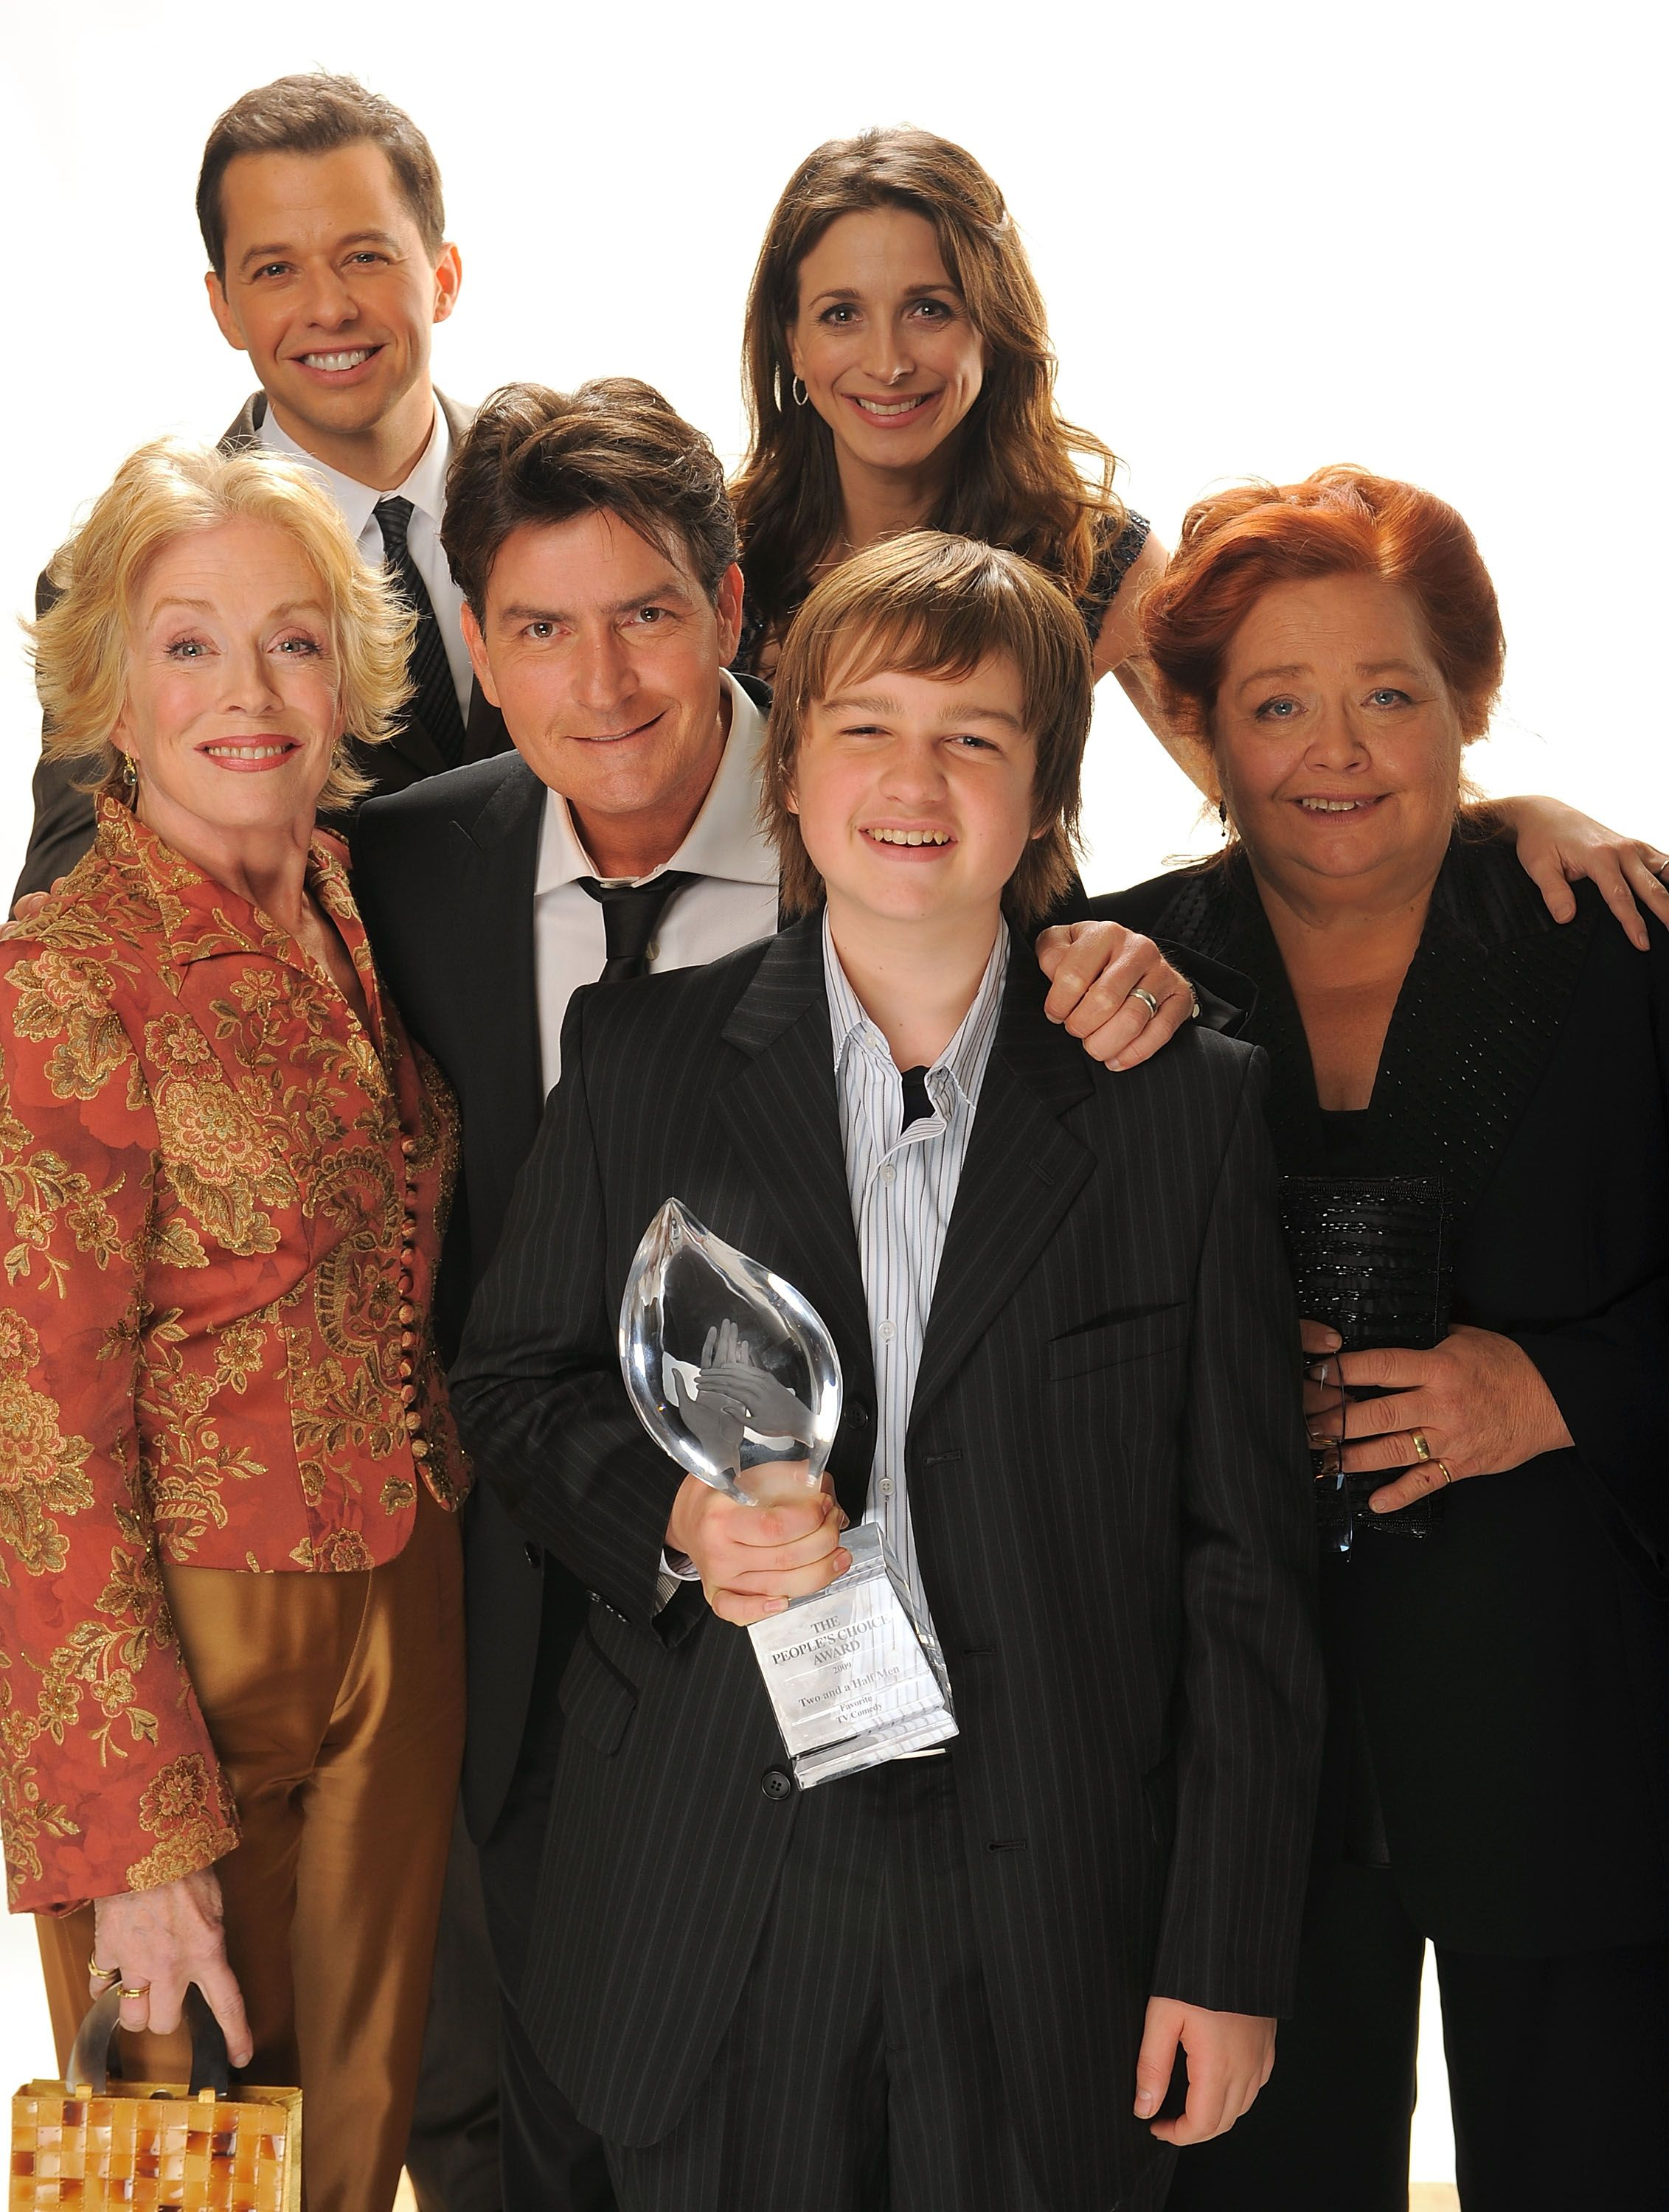 Holland Taylor, Jon Cryer, Charlie Sheen, Marin Hinkle, Angus T. Jones, and Conchata Ferrell at the 35th Annual People's Choice Awards in 2009 in Los Angeles | Source: Getty Images